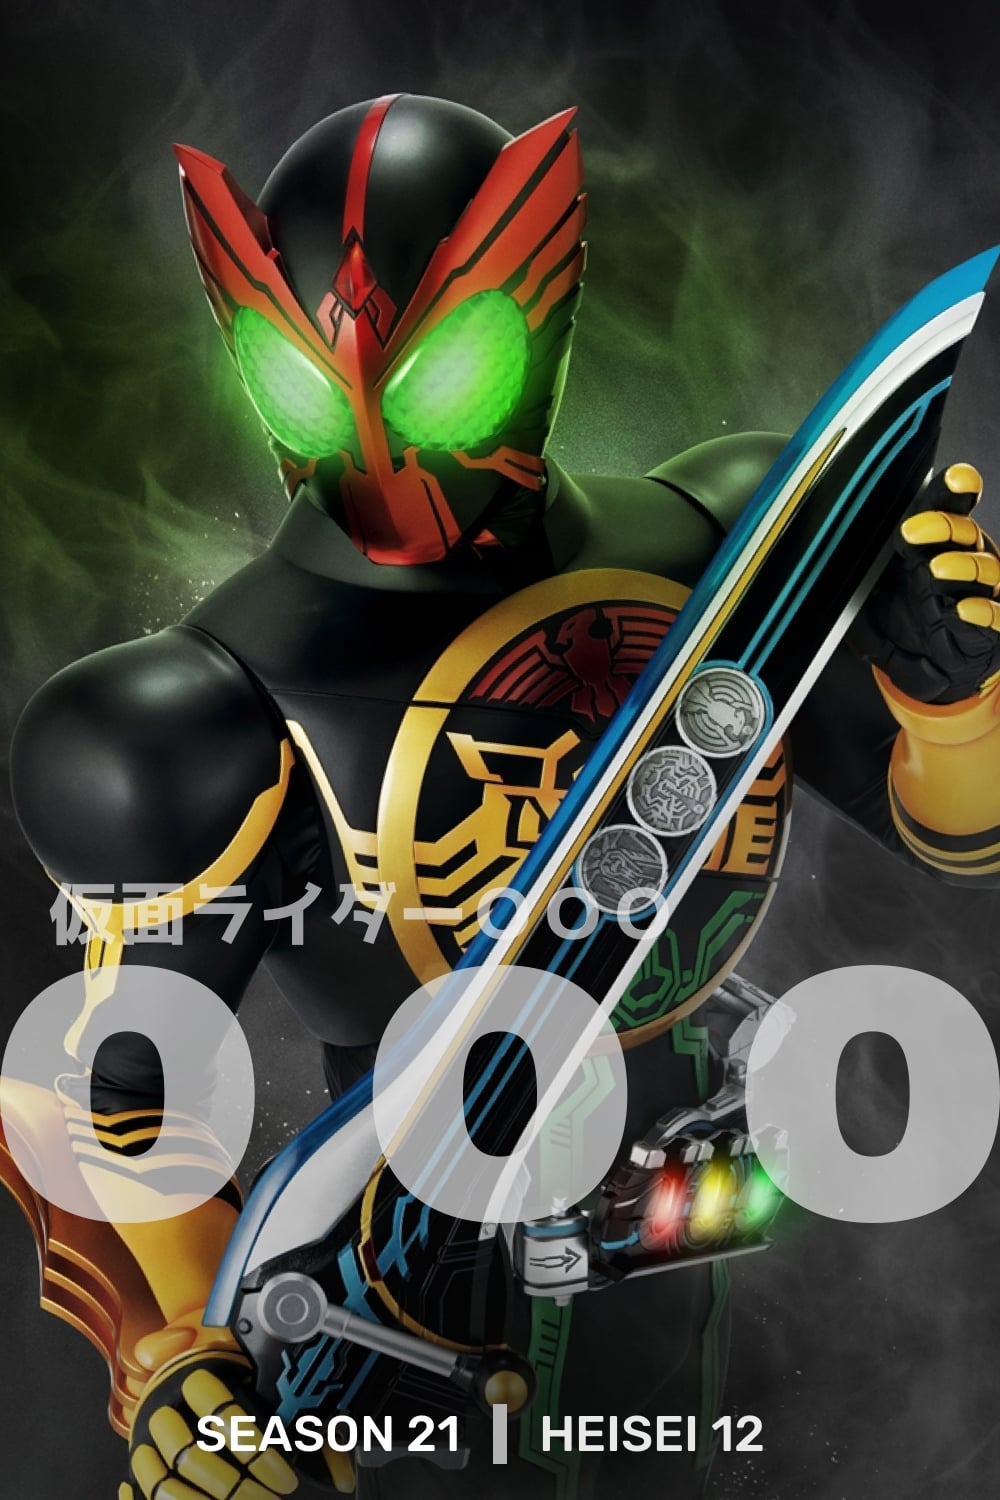 Kamen Rider - Season 21 Episode 35 : Dreams, Brother, Birth's Secret Season 21